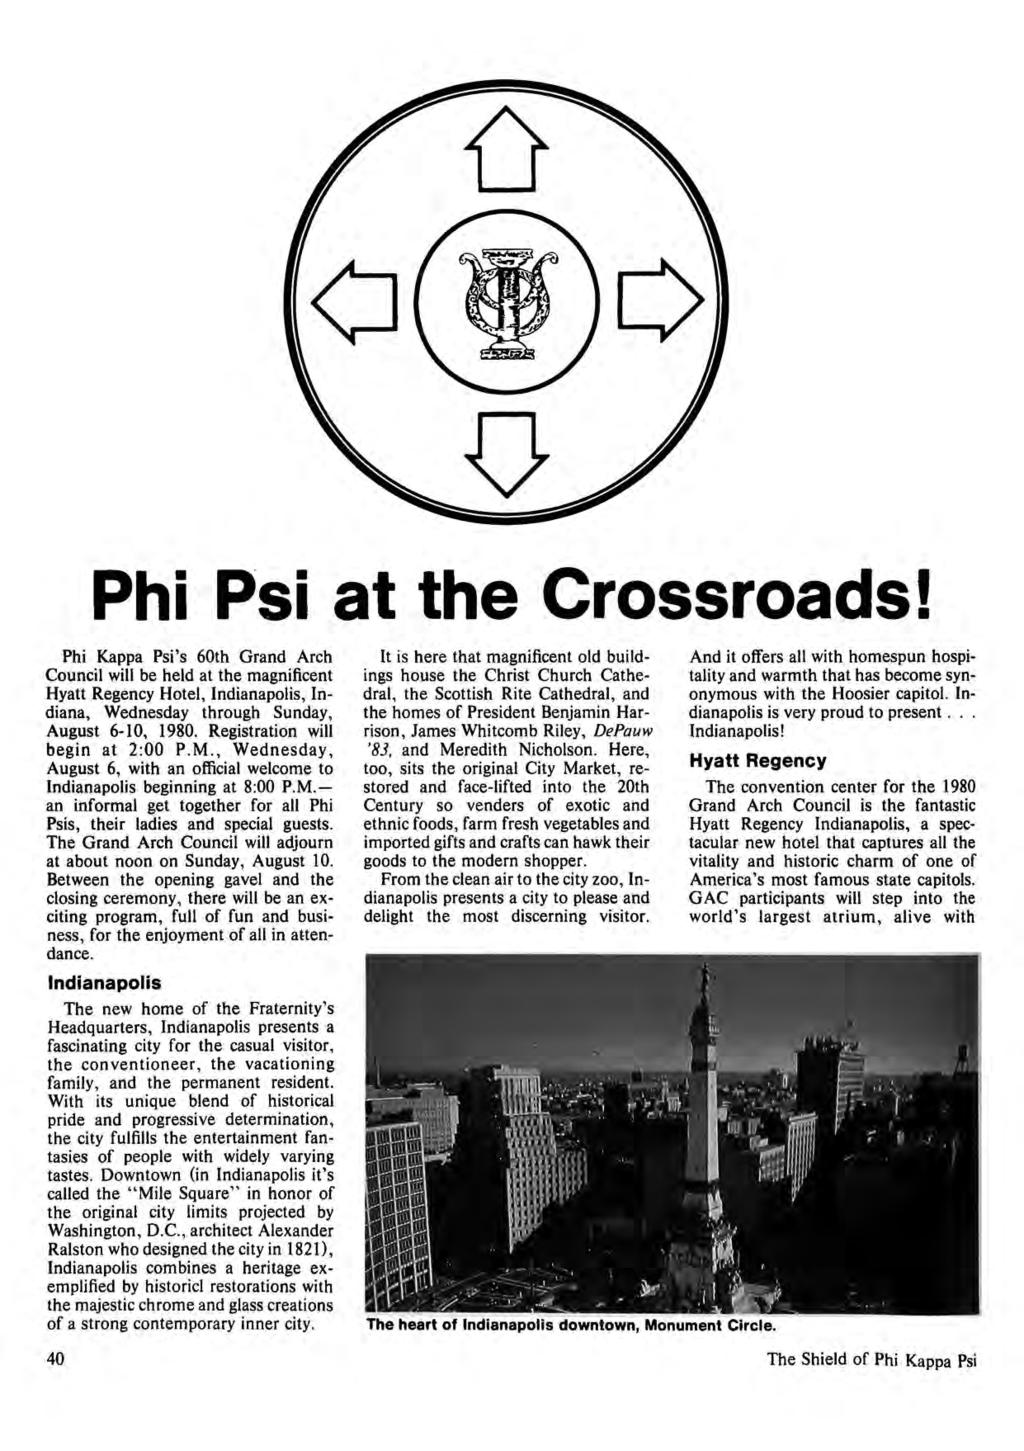 Phi Psi at the Crossroads! Phi Kappa Psi's 60th Grand Arch Council will be held at the magnificent Hyatt Regency Hotel, Indianapolis, Indiana, Wednesday through Sunday, August 6-10, 1980.